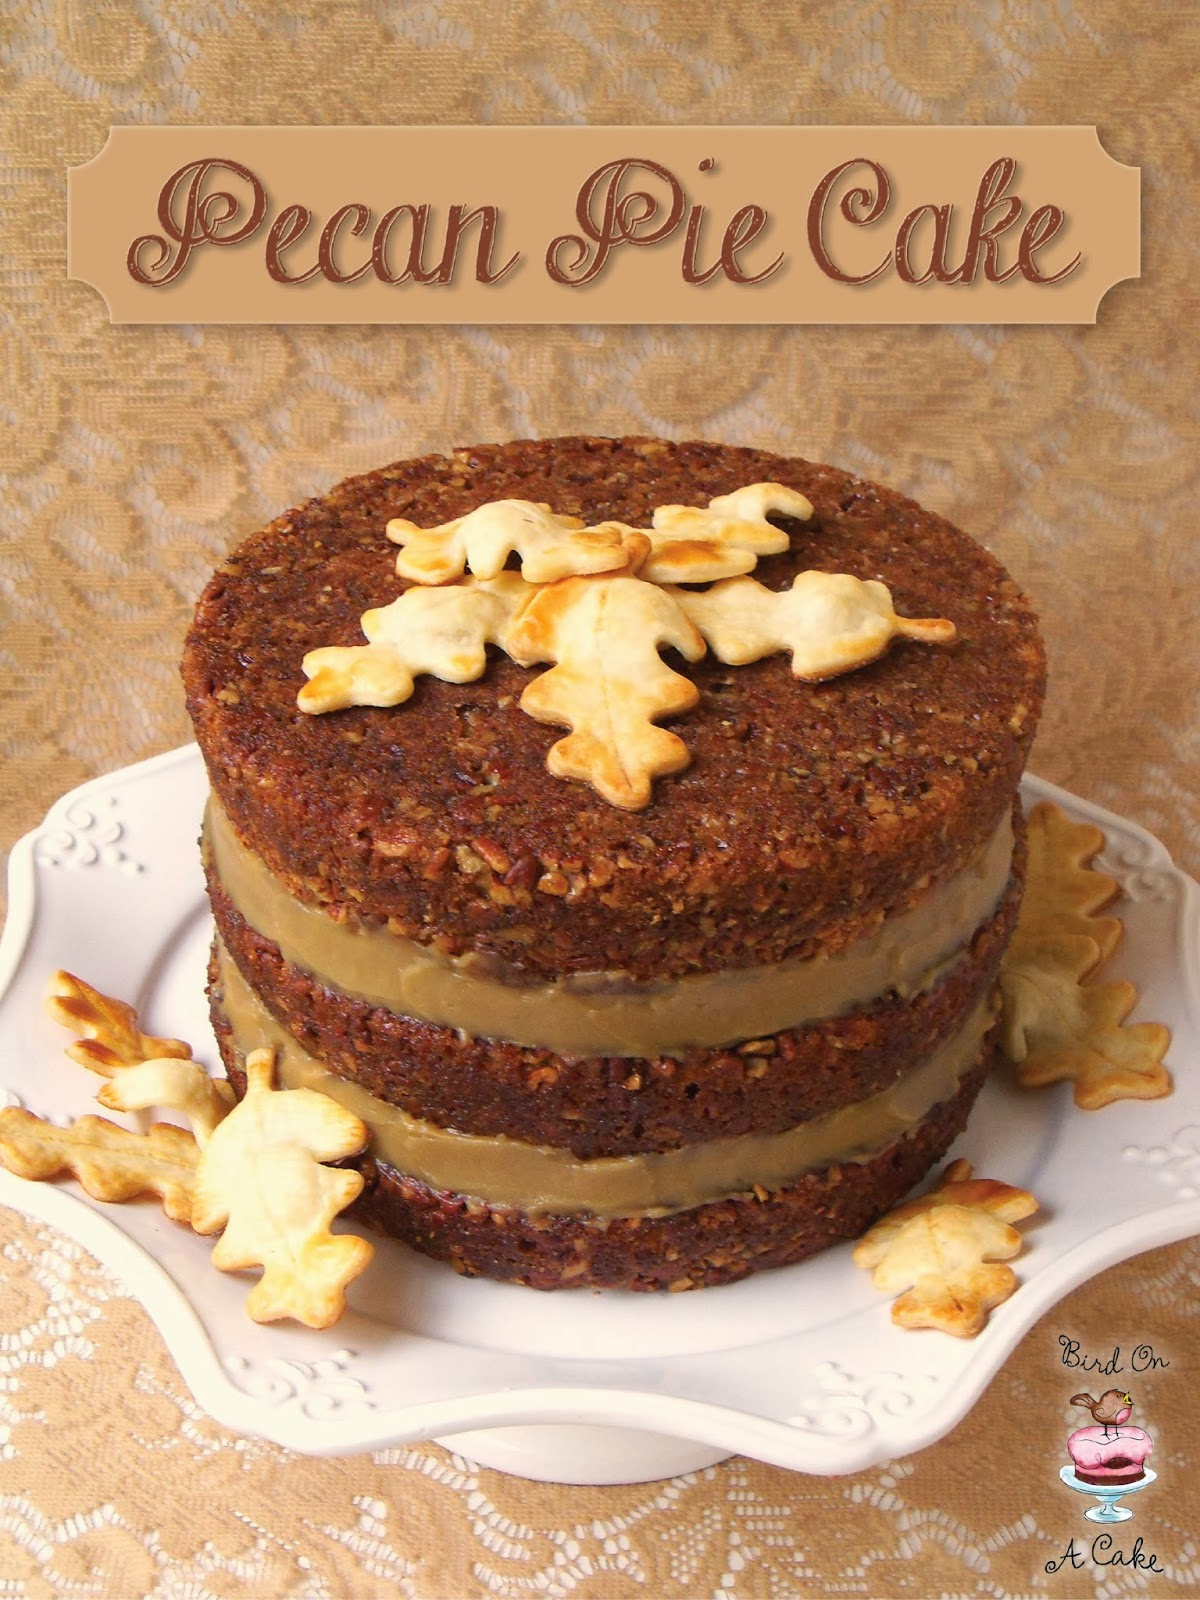 Pecan Pie Cake Thanksgiving Dinner Always Includes An Array Of Delicious Desserts Do You Have Trouble Choosing Between A Slice Or Piece